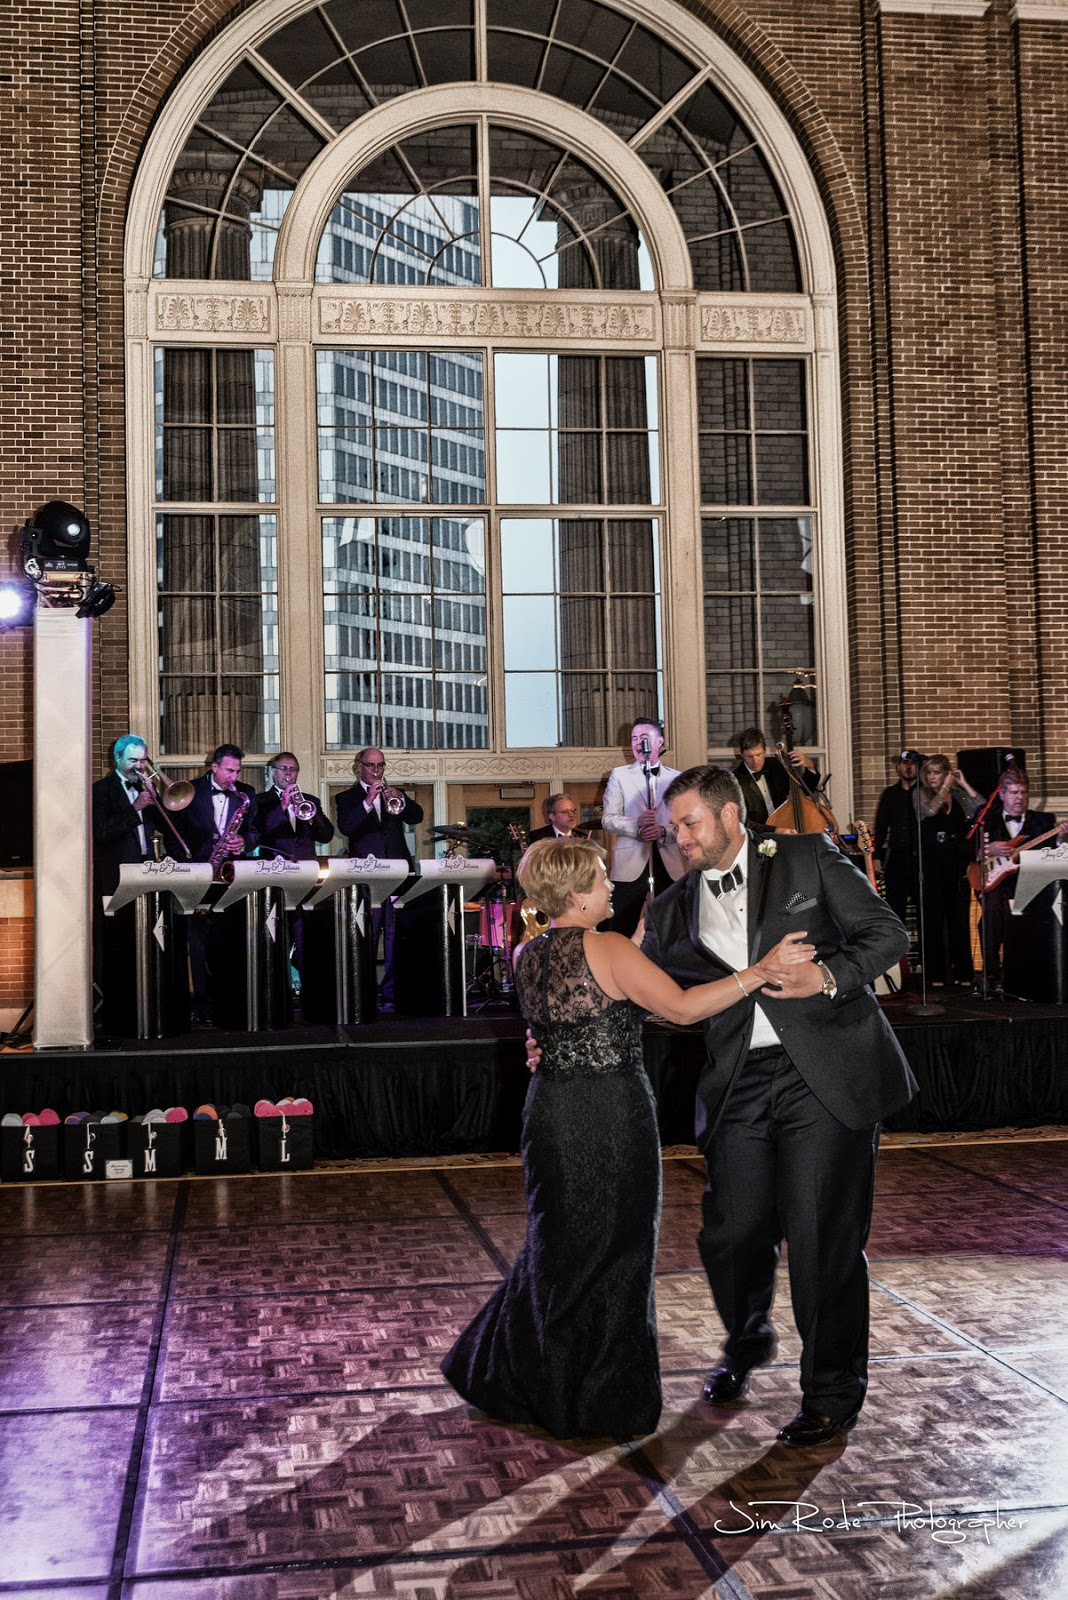 dance with Mom with the huge window backdrop at Union Station Dallas